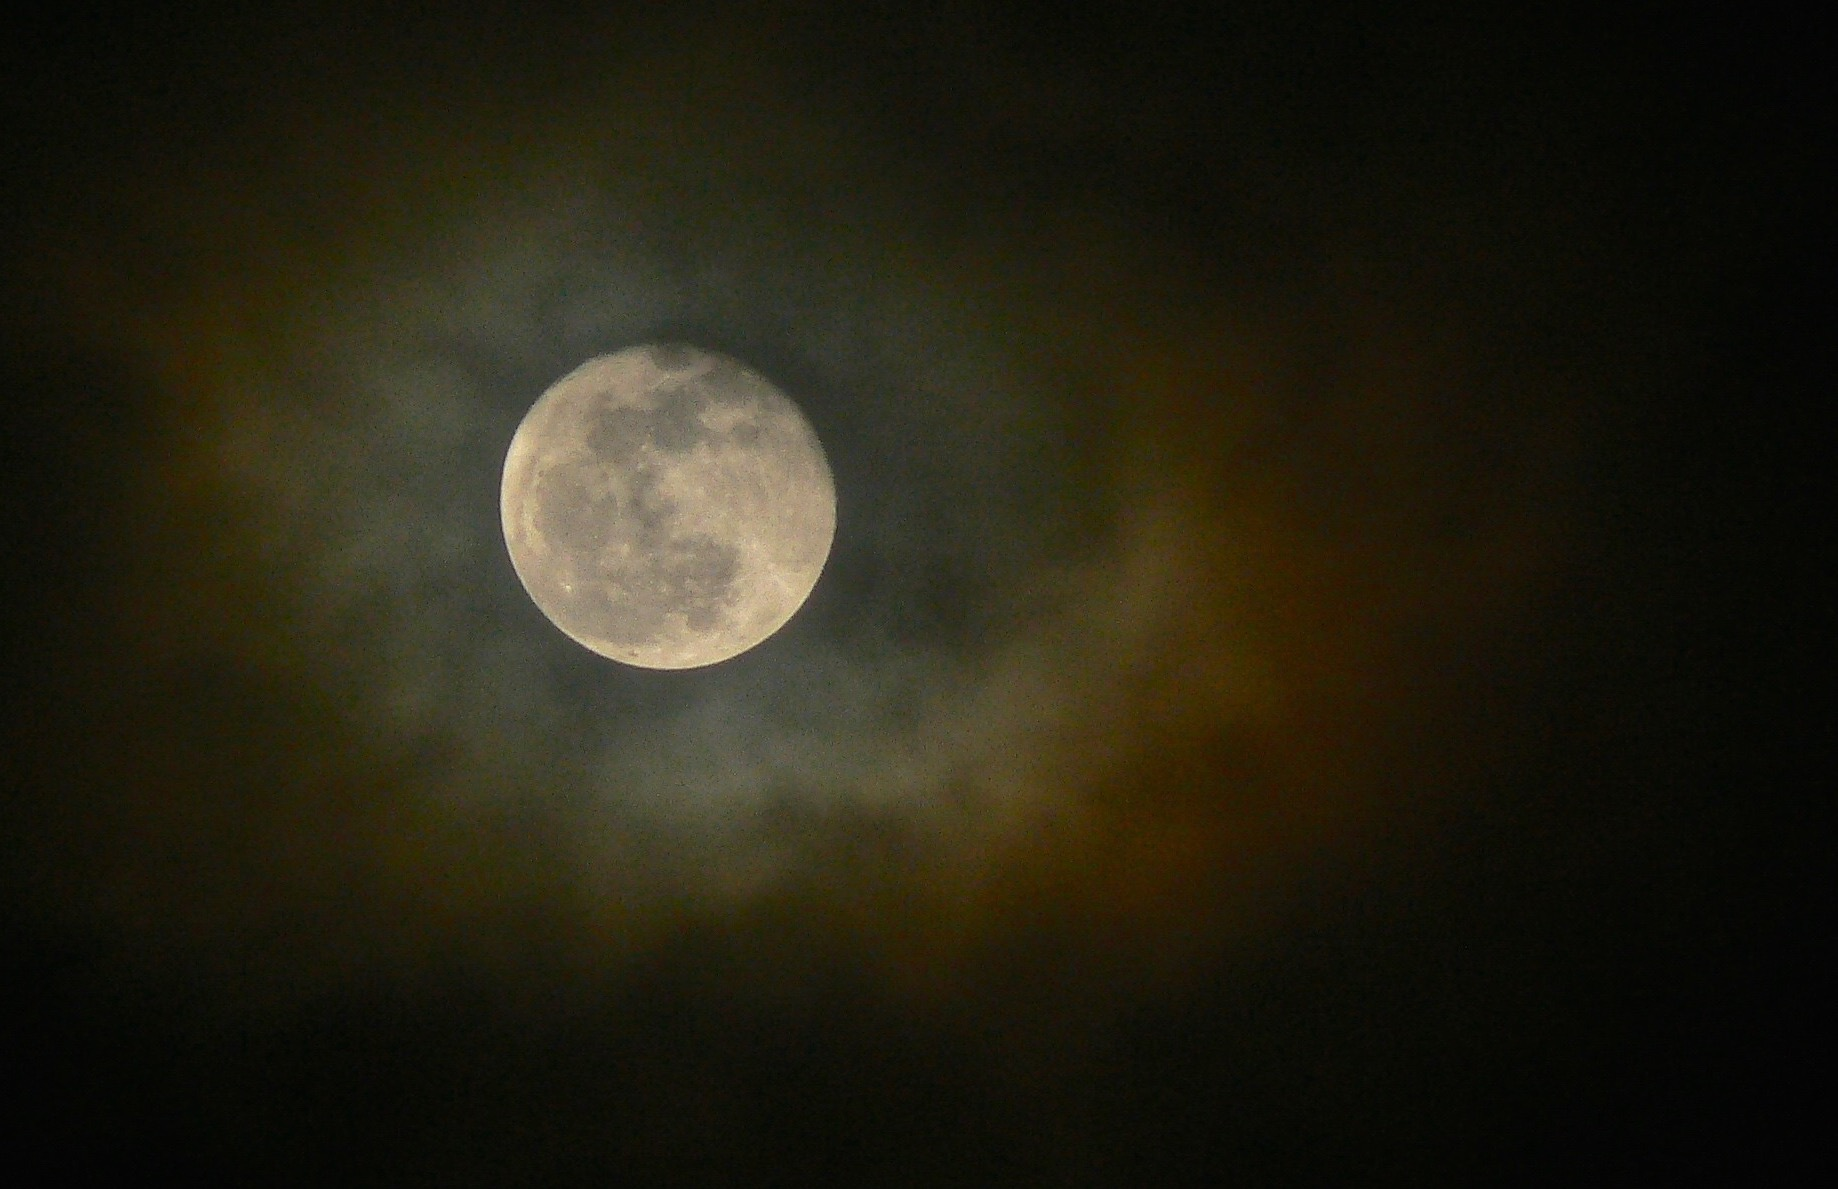 New Year's Moon 2010, when reflected sunlight made the quarter-million-mile journey to Earth and was refracted through a thin layer of cloud above Brentwood, California.